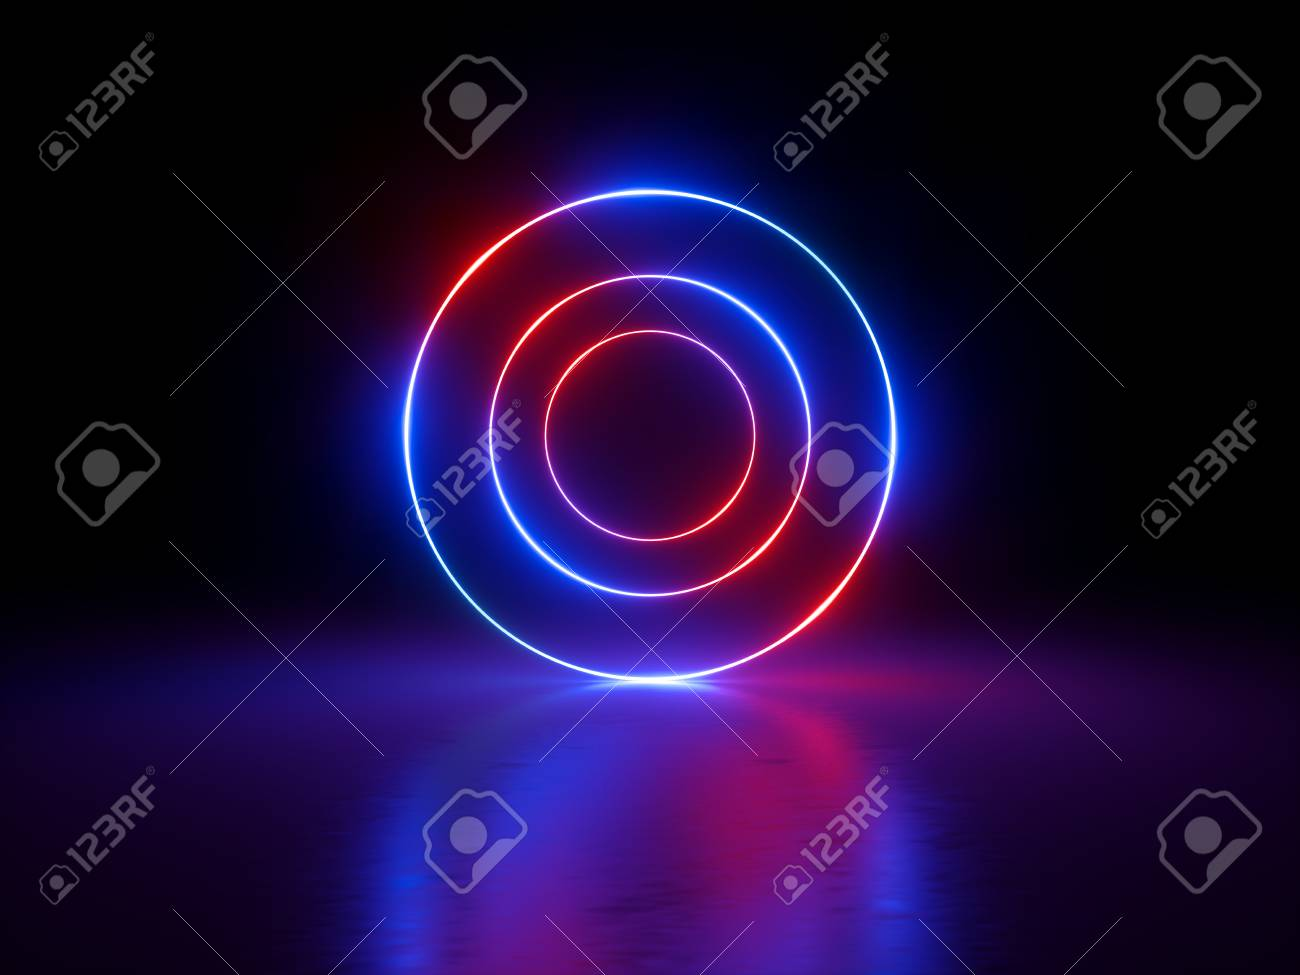 thumbnail animation loop videoblocks ultra background video shiny hd rings colorful glowing neon motion design seamless